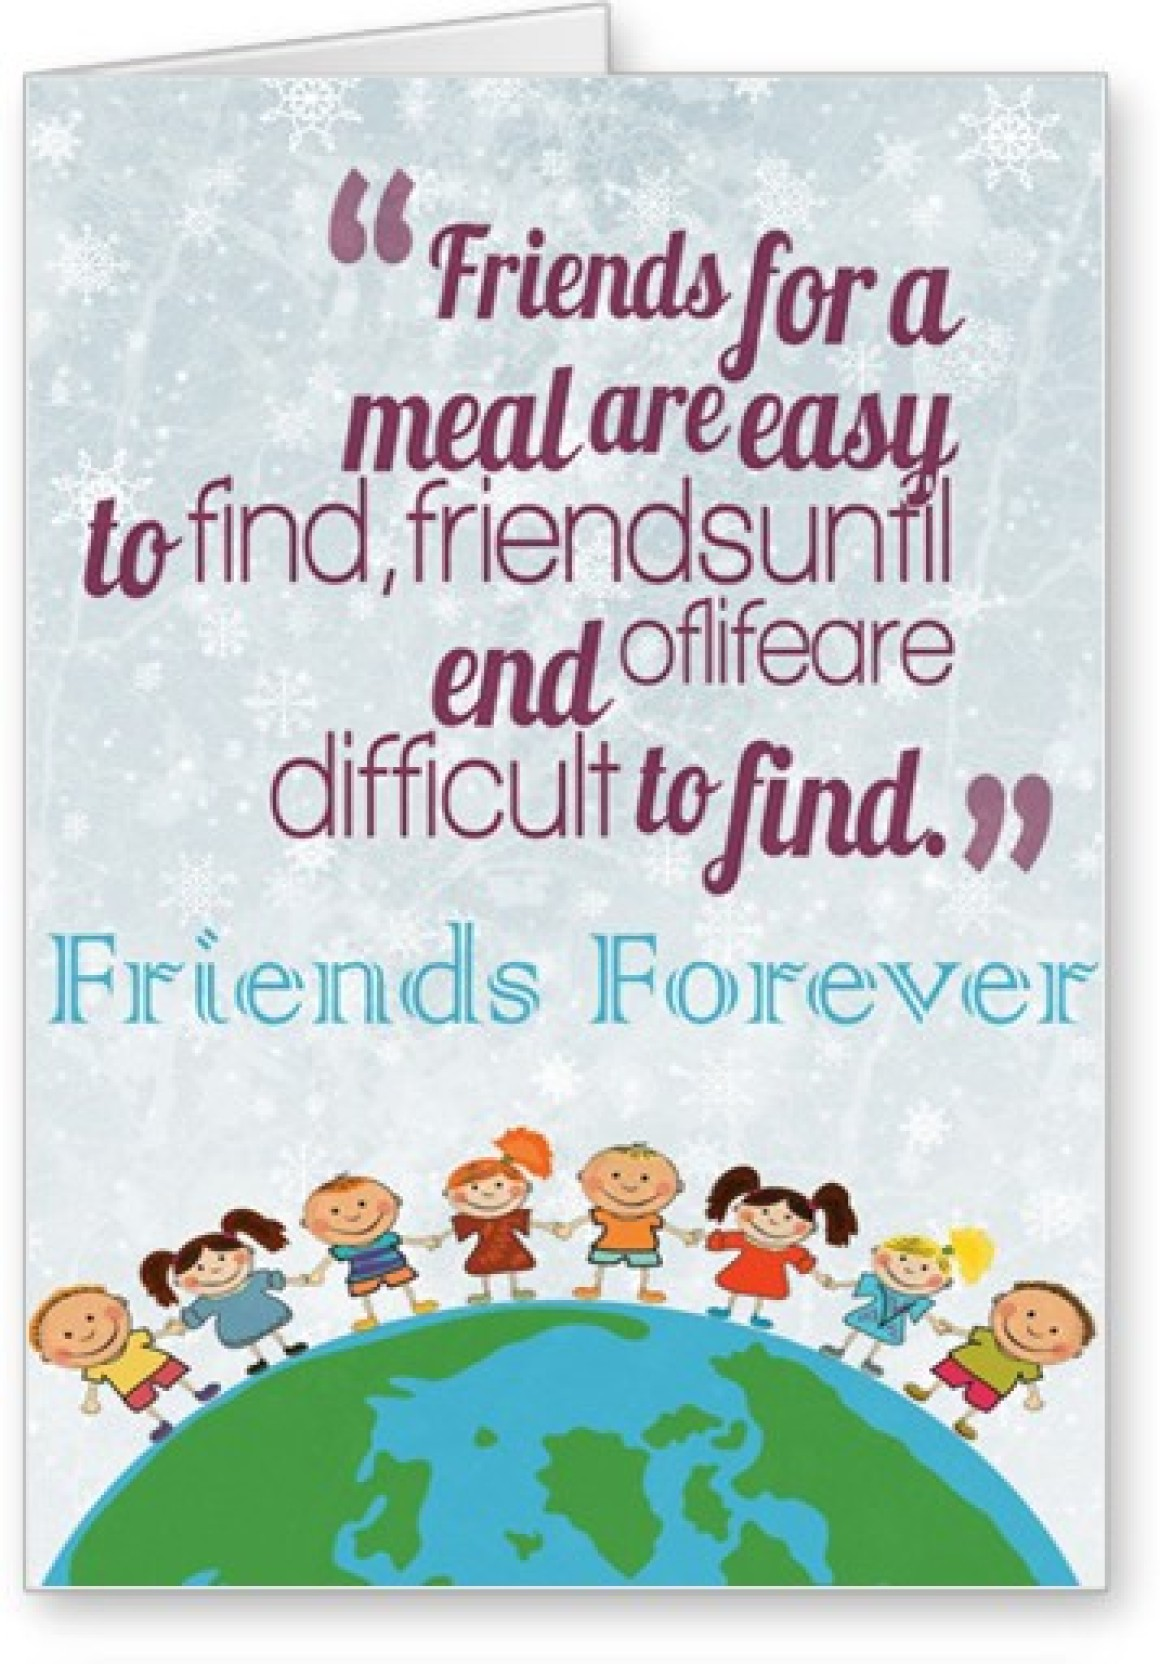 Lolprint Friends Forever Friendship Day Greeting Card Price In India